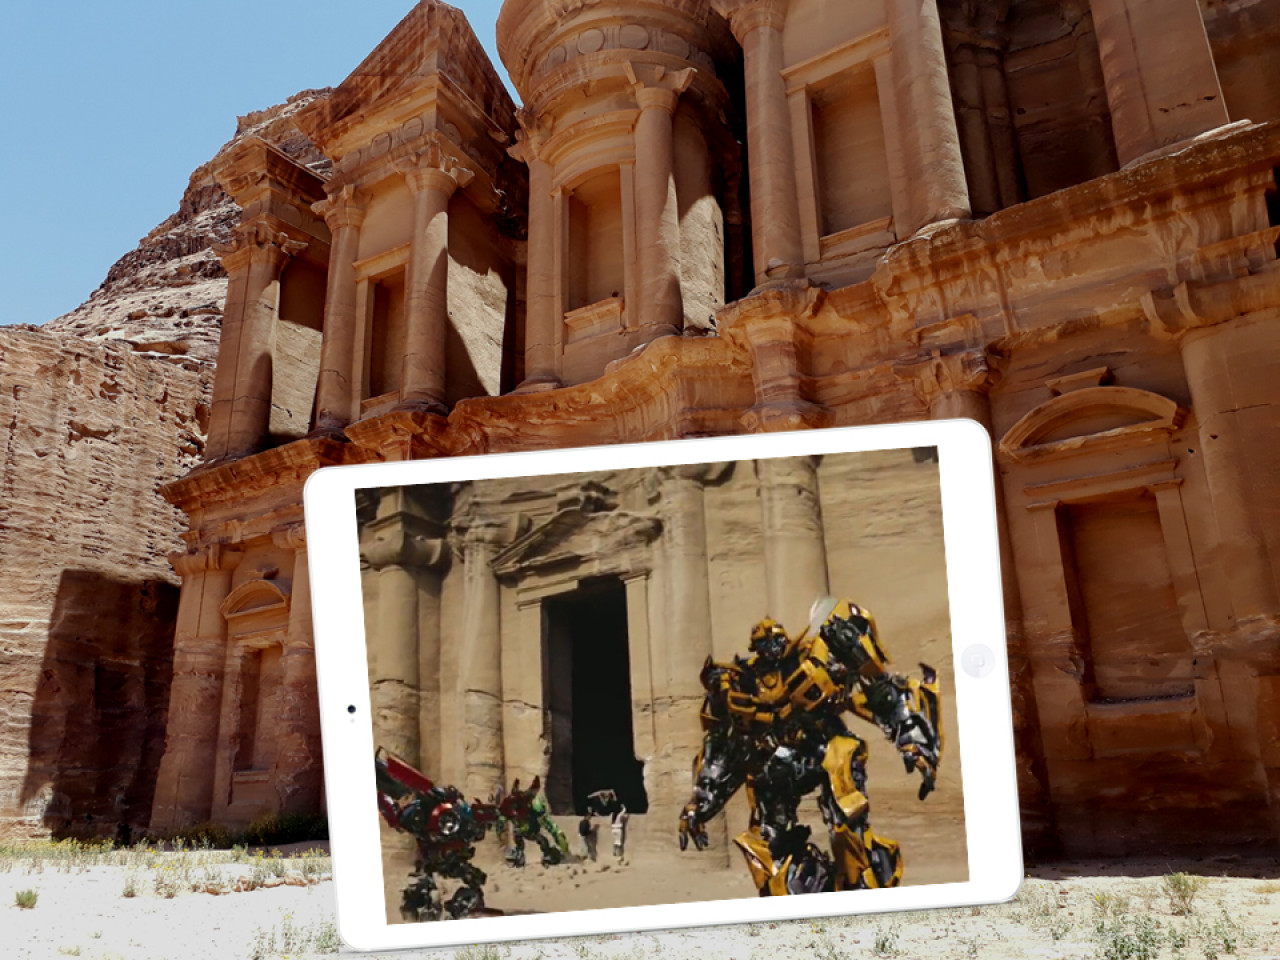 The Monastery also features in the Hollywood blockbuster Transformers: Revenge of the Fallen.